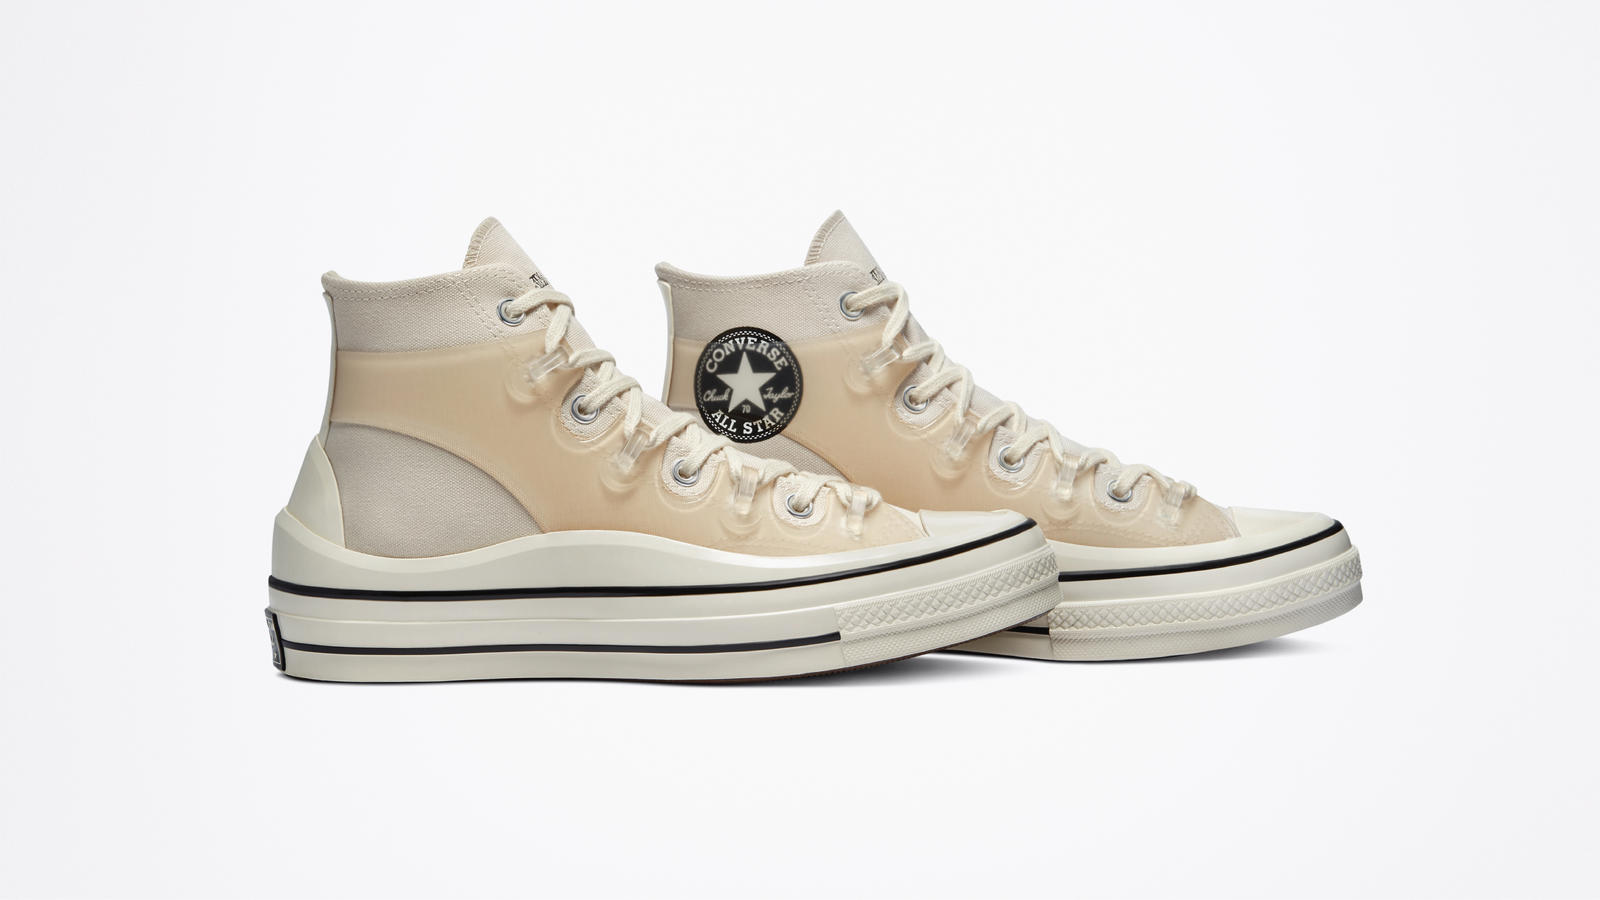 Converse x Kim Jones Chuck 70 and Apparel  2